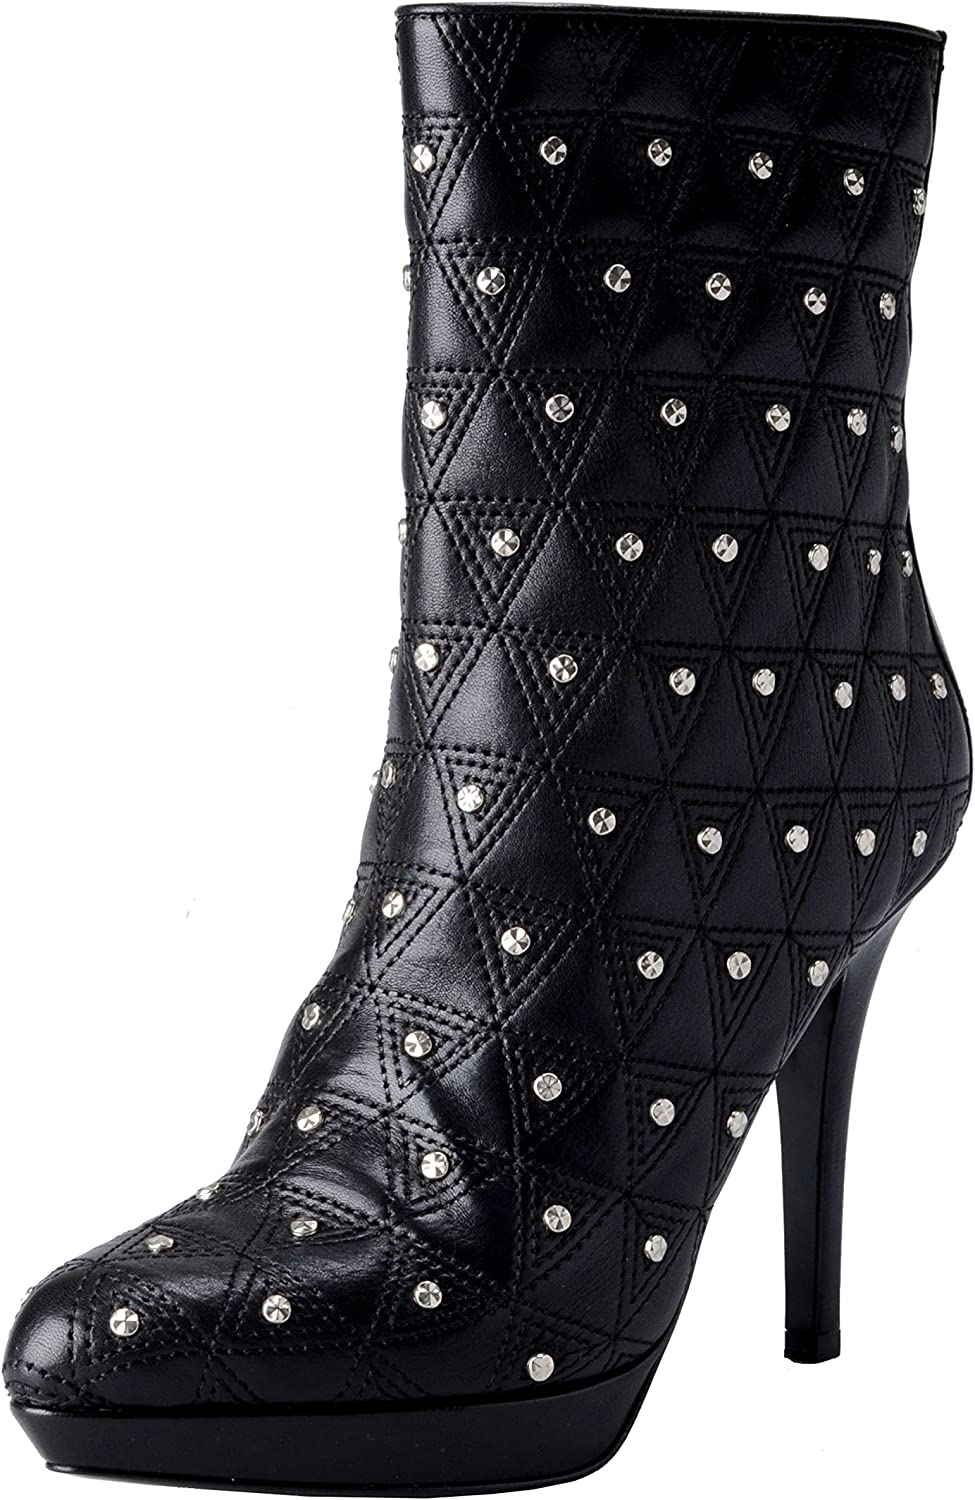 Versace Women's Leather Black Embellished High Heels Ankle Boots shoes US 5 IT 36;